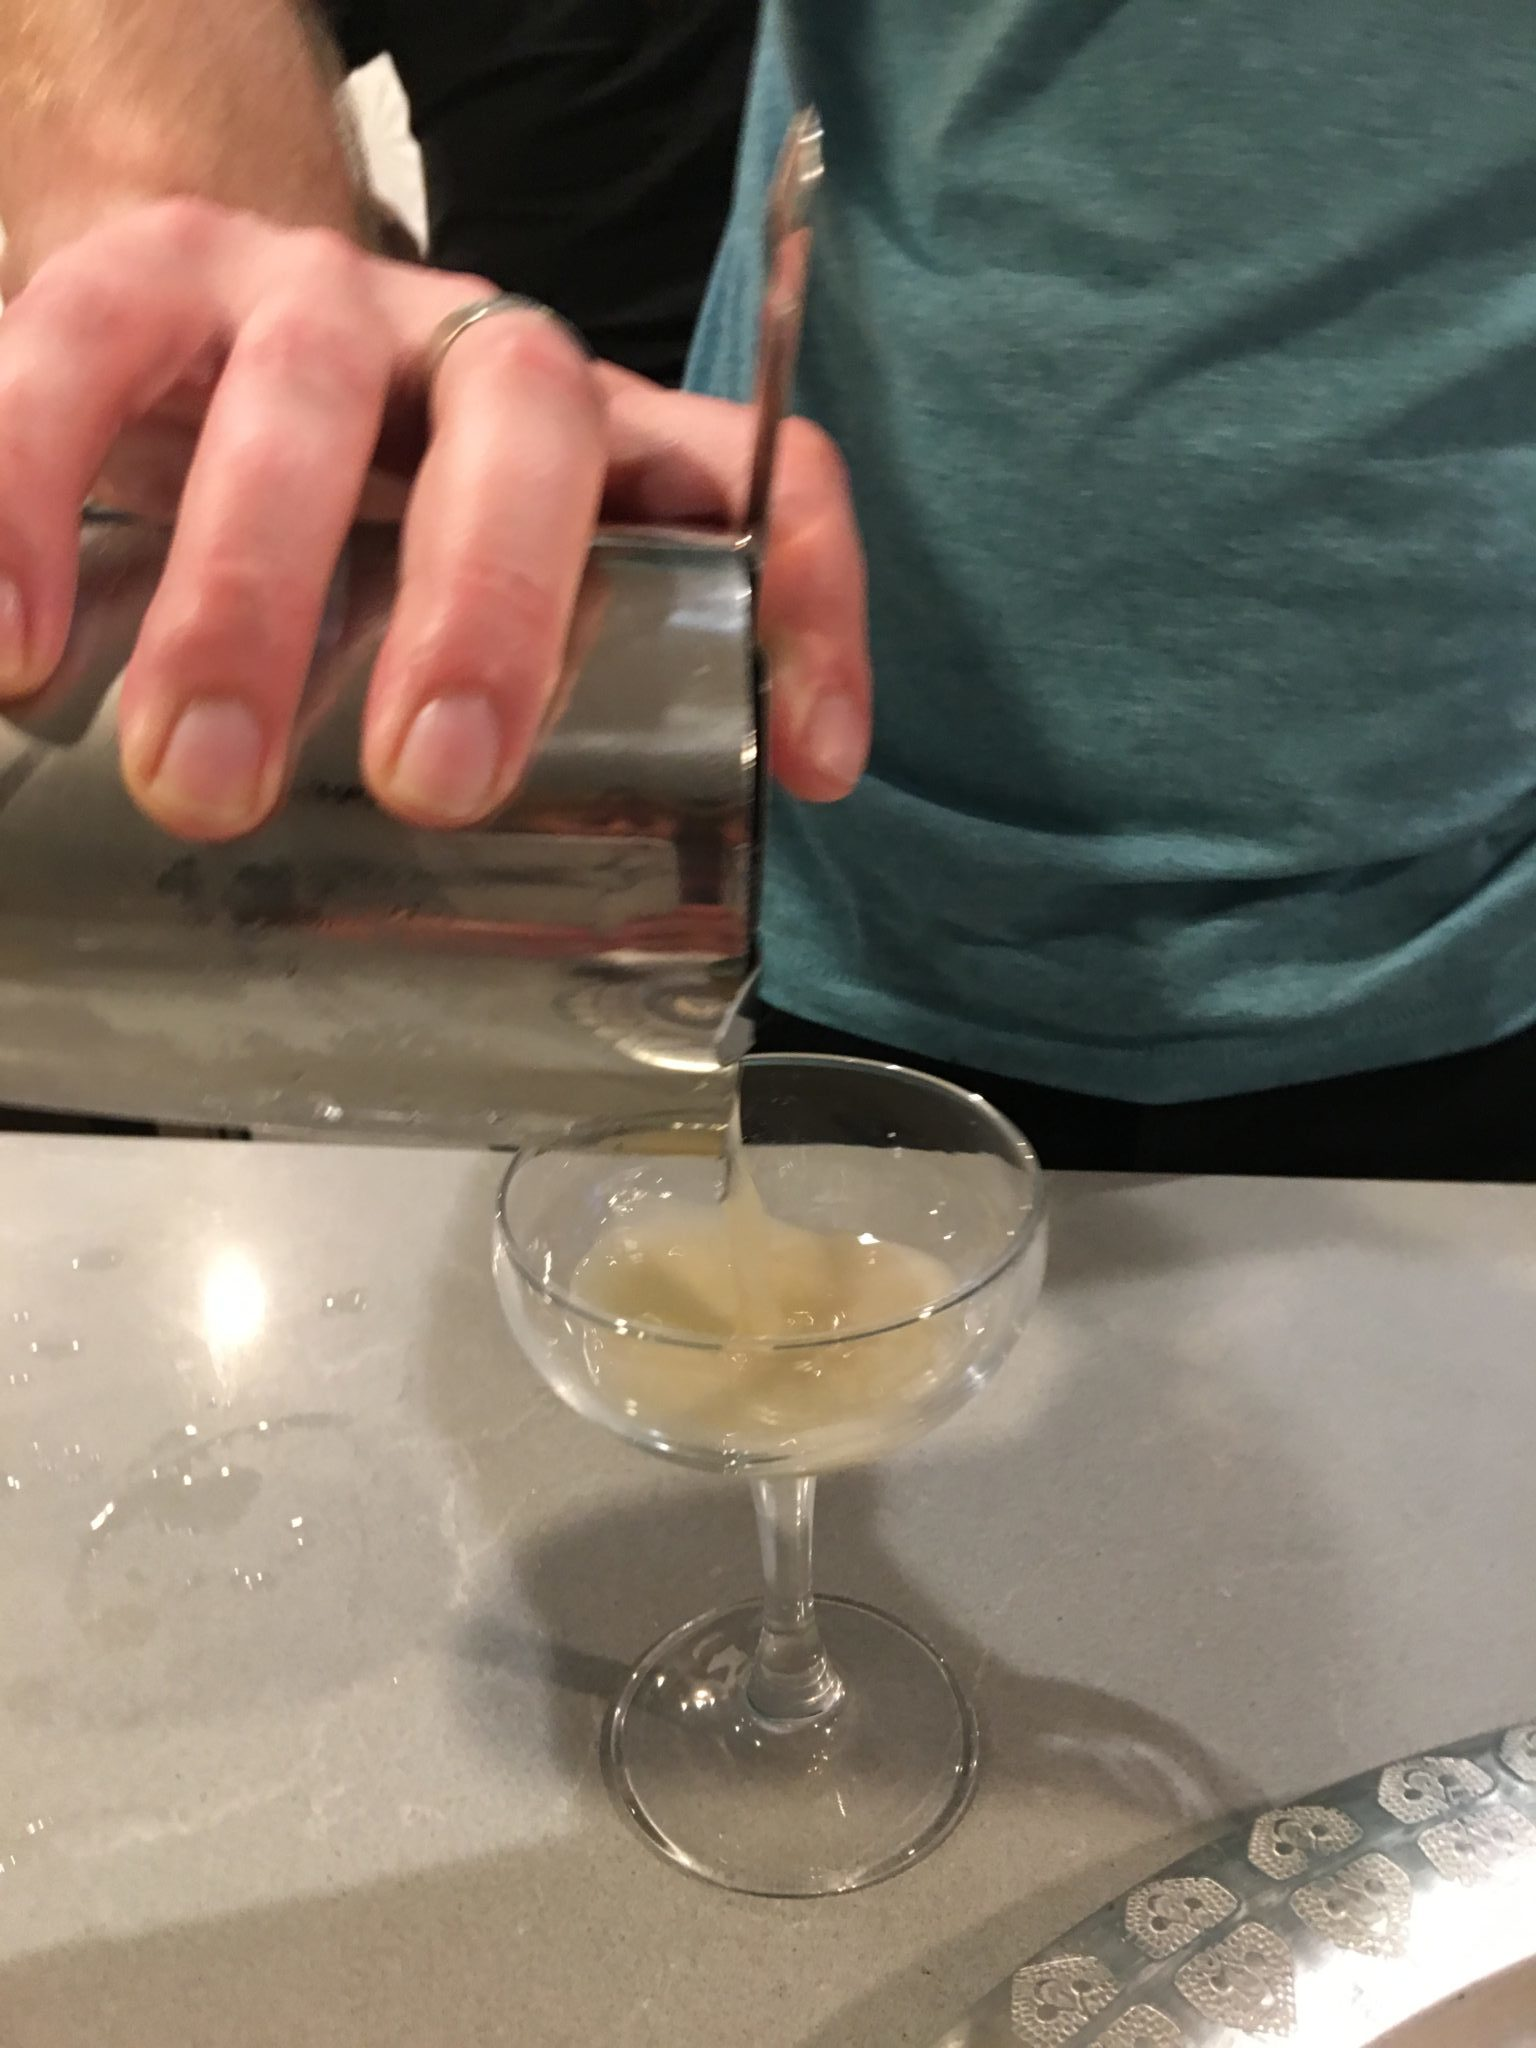 Pouring a cocktail into a glass